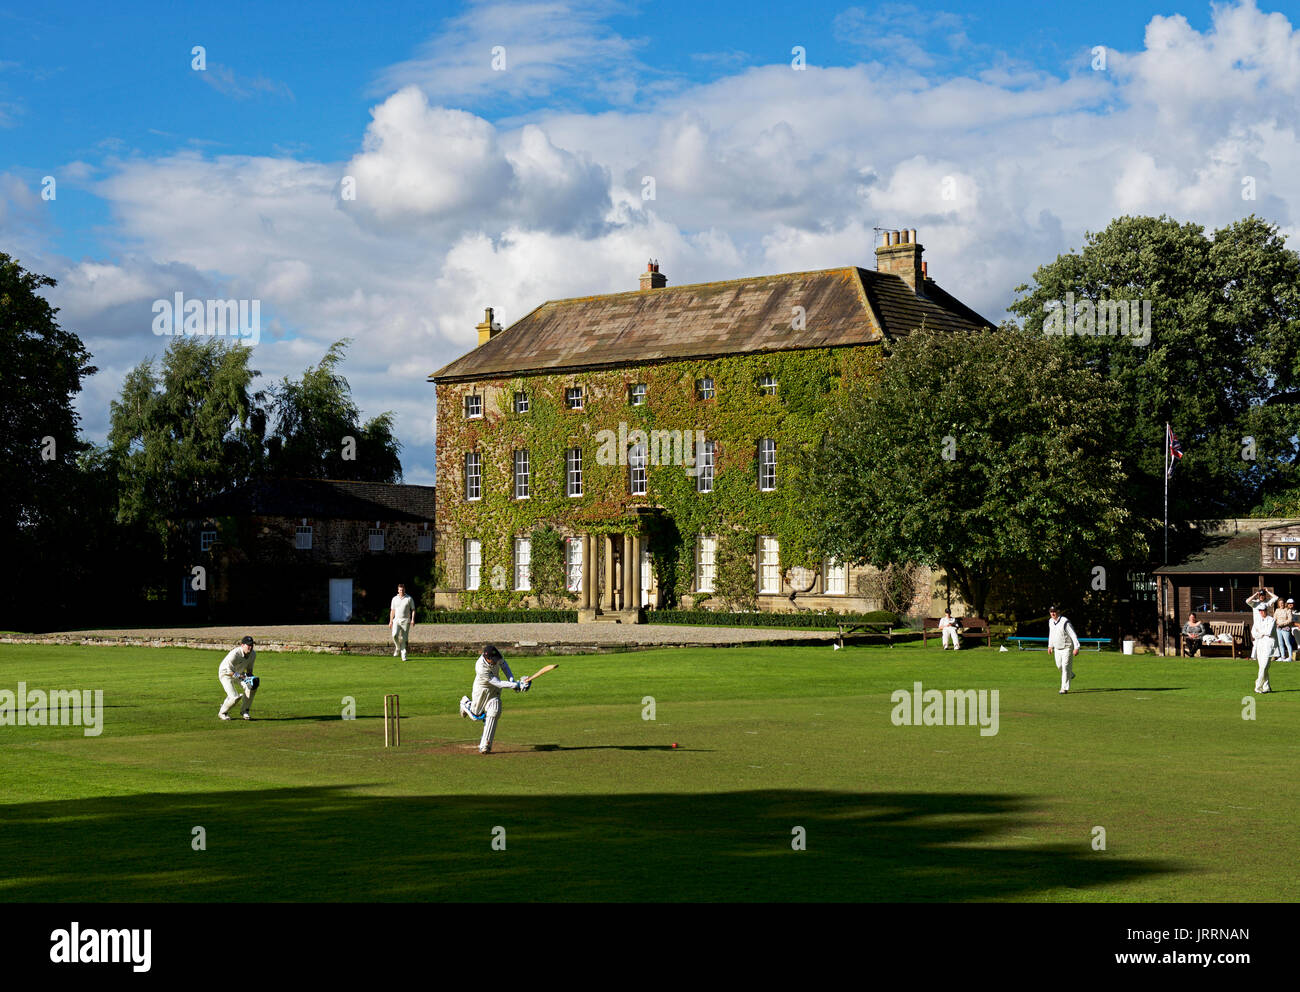 Cricket match in the village of Crakehall, North Yorkshire, England UK - Stock Image